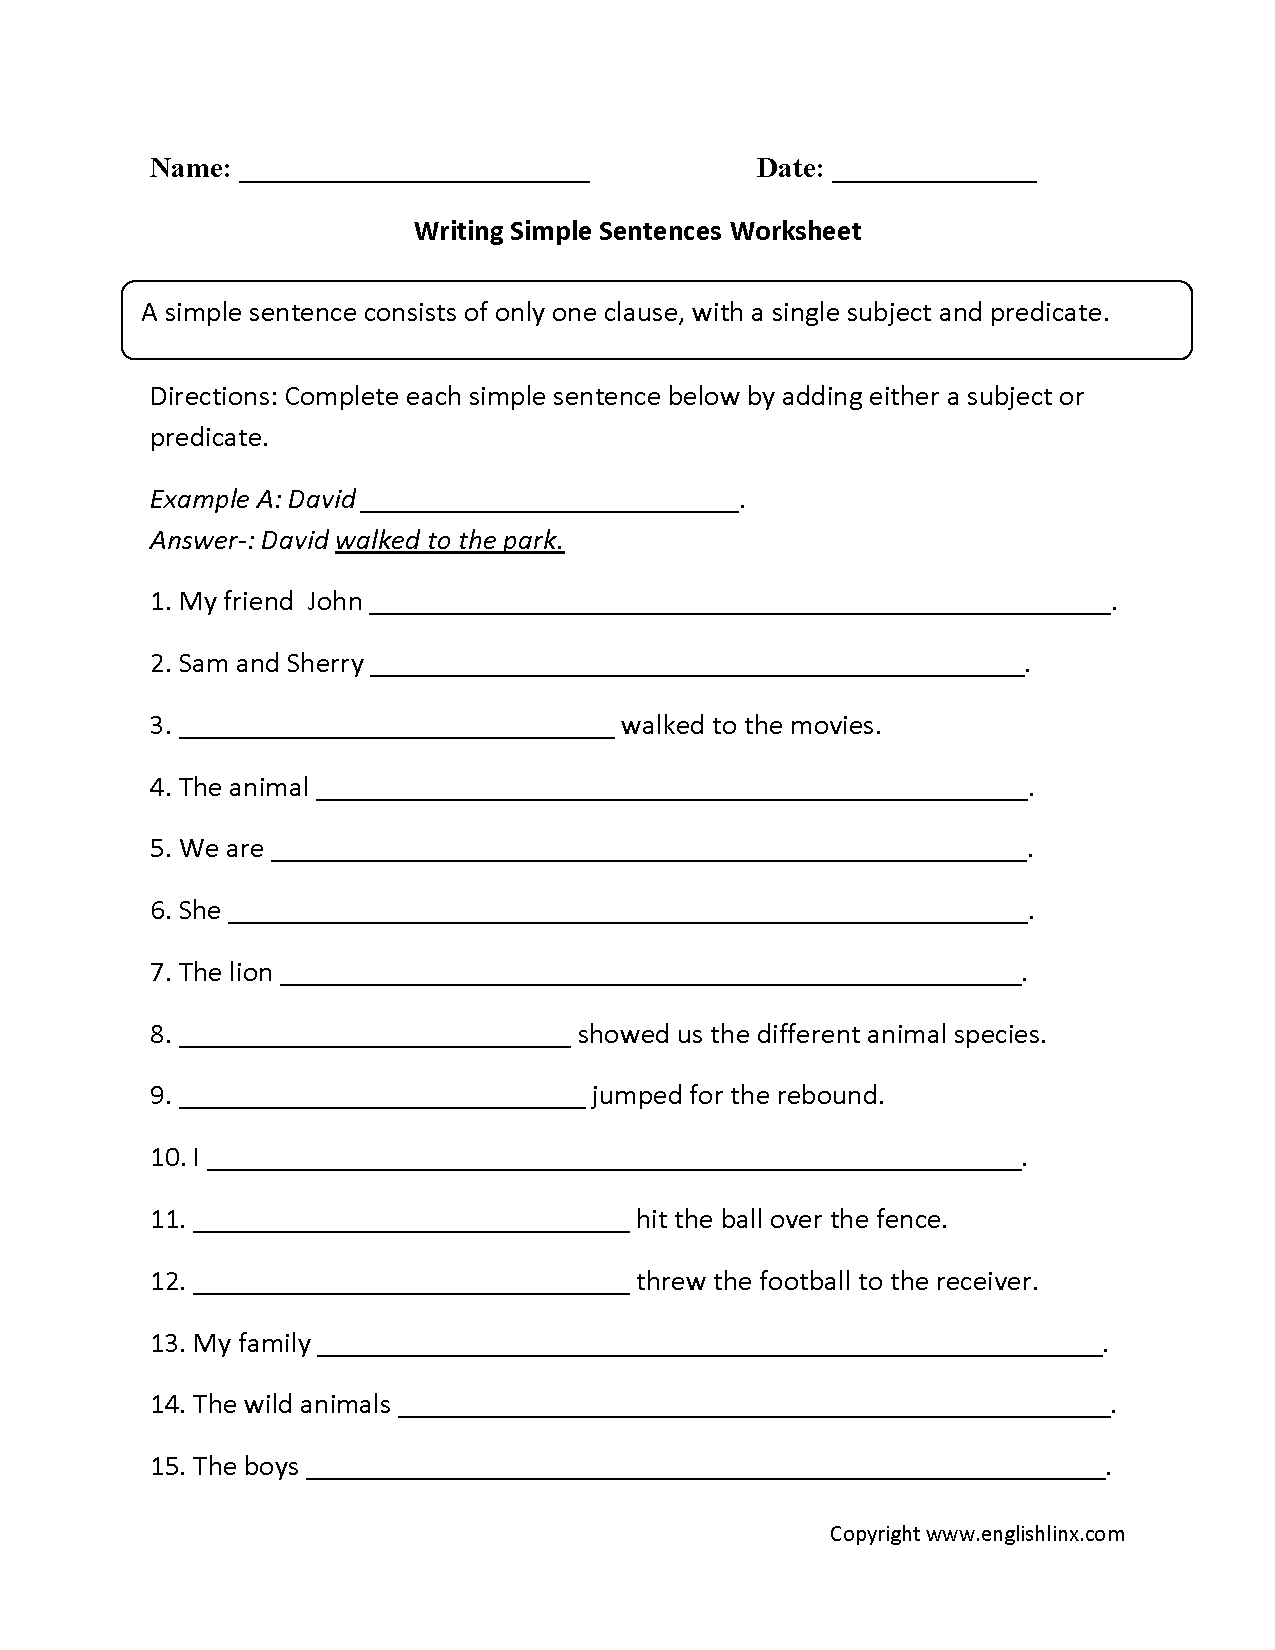 Sentences Worksheets – Writing Worksheets for Grade 1